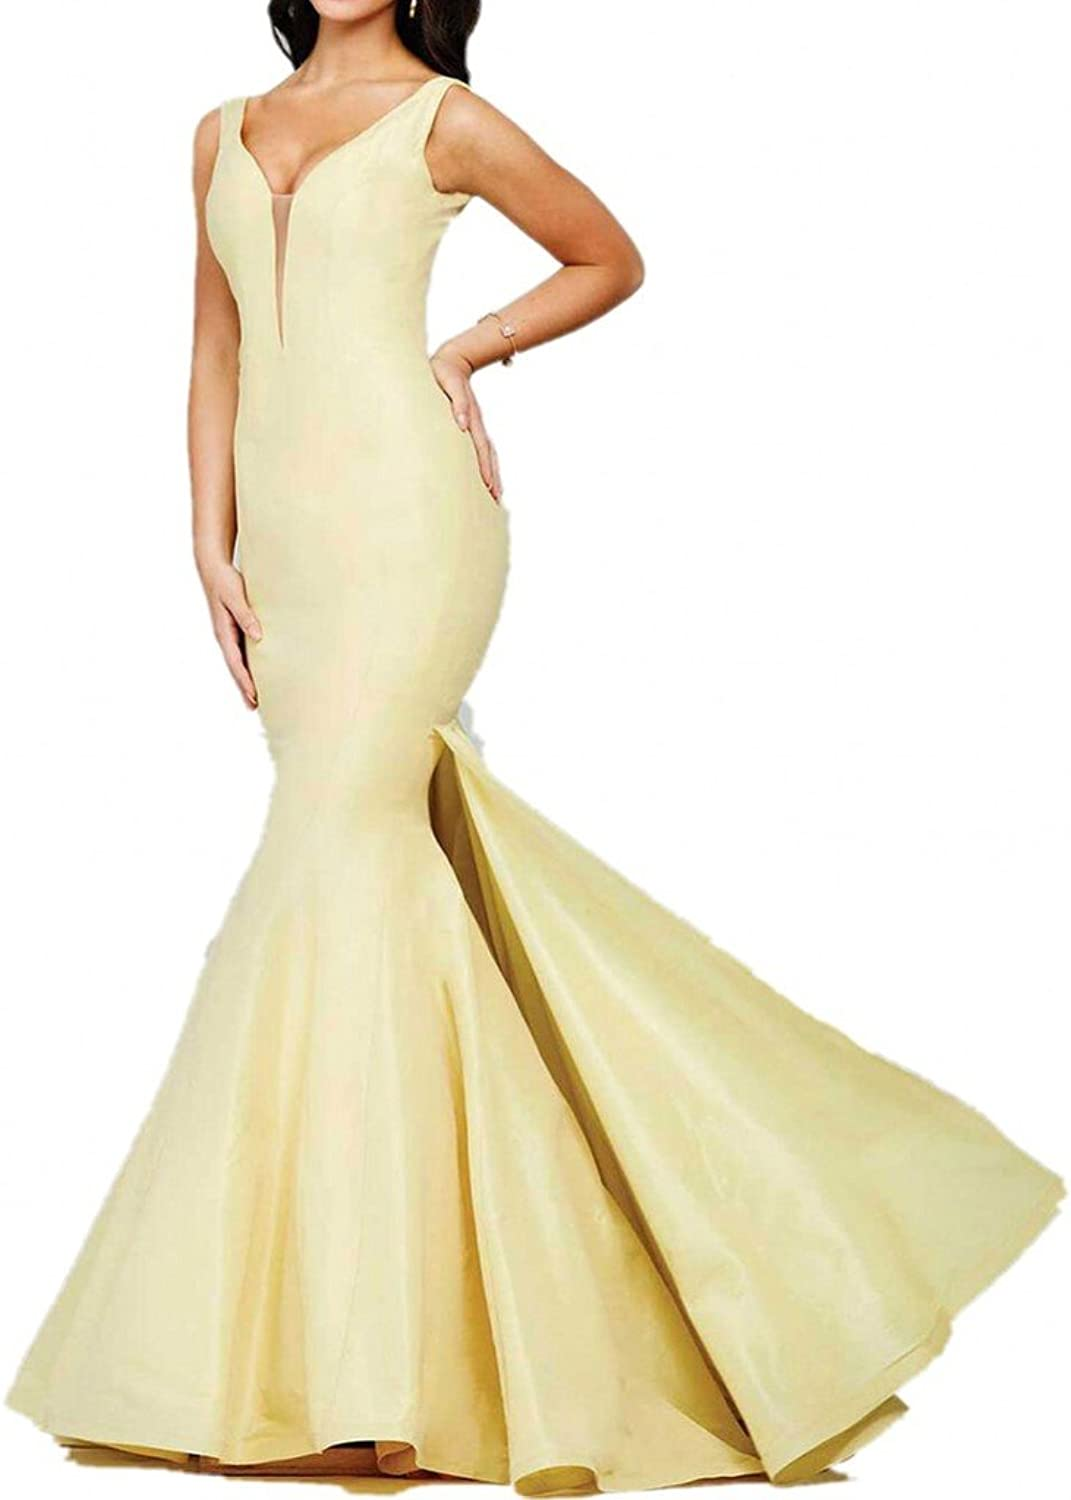 La Mariee Sexy Mermaid DeepV Formal Evening Prom Dresses For Party Plus Size